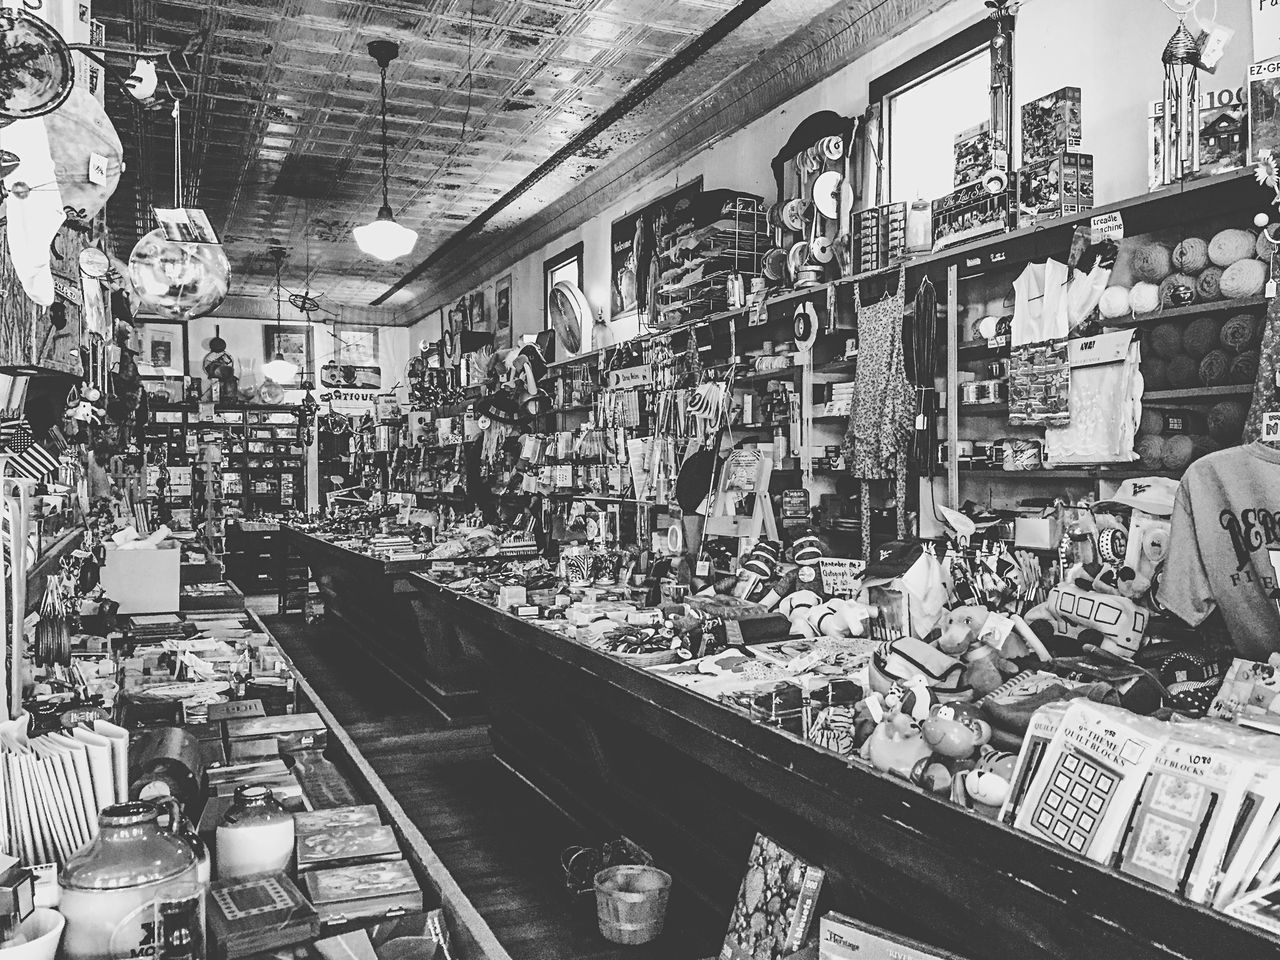 At the oldest Five and Dime in the U.S., ISpy  an American flag, a frying pan, a Viking hat, a clothes pin, some fishing bobbers, the John Deere logo, and a sock monkey couple... Bnw_friday_eyeemchallenge EyeEmSpy Blackandwhite Black And White Black & White Fortheloveofblackandwhite Fiveanddime IPhoneography Eye4photography